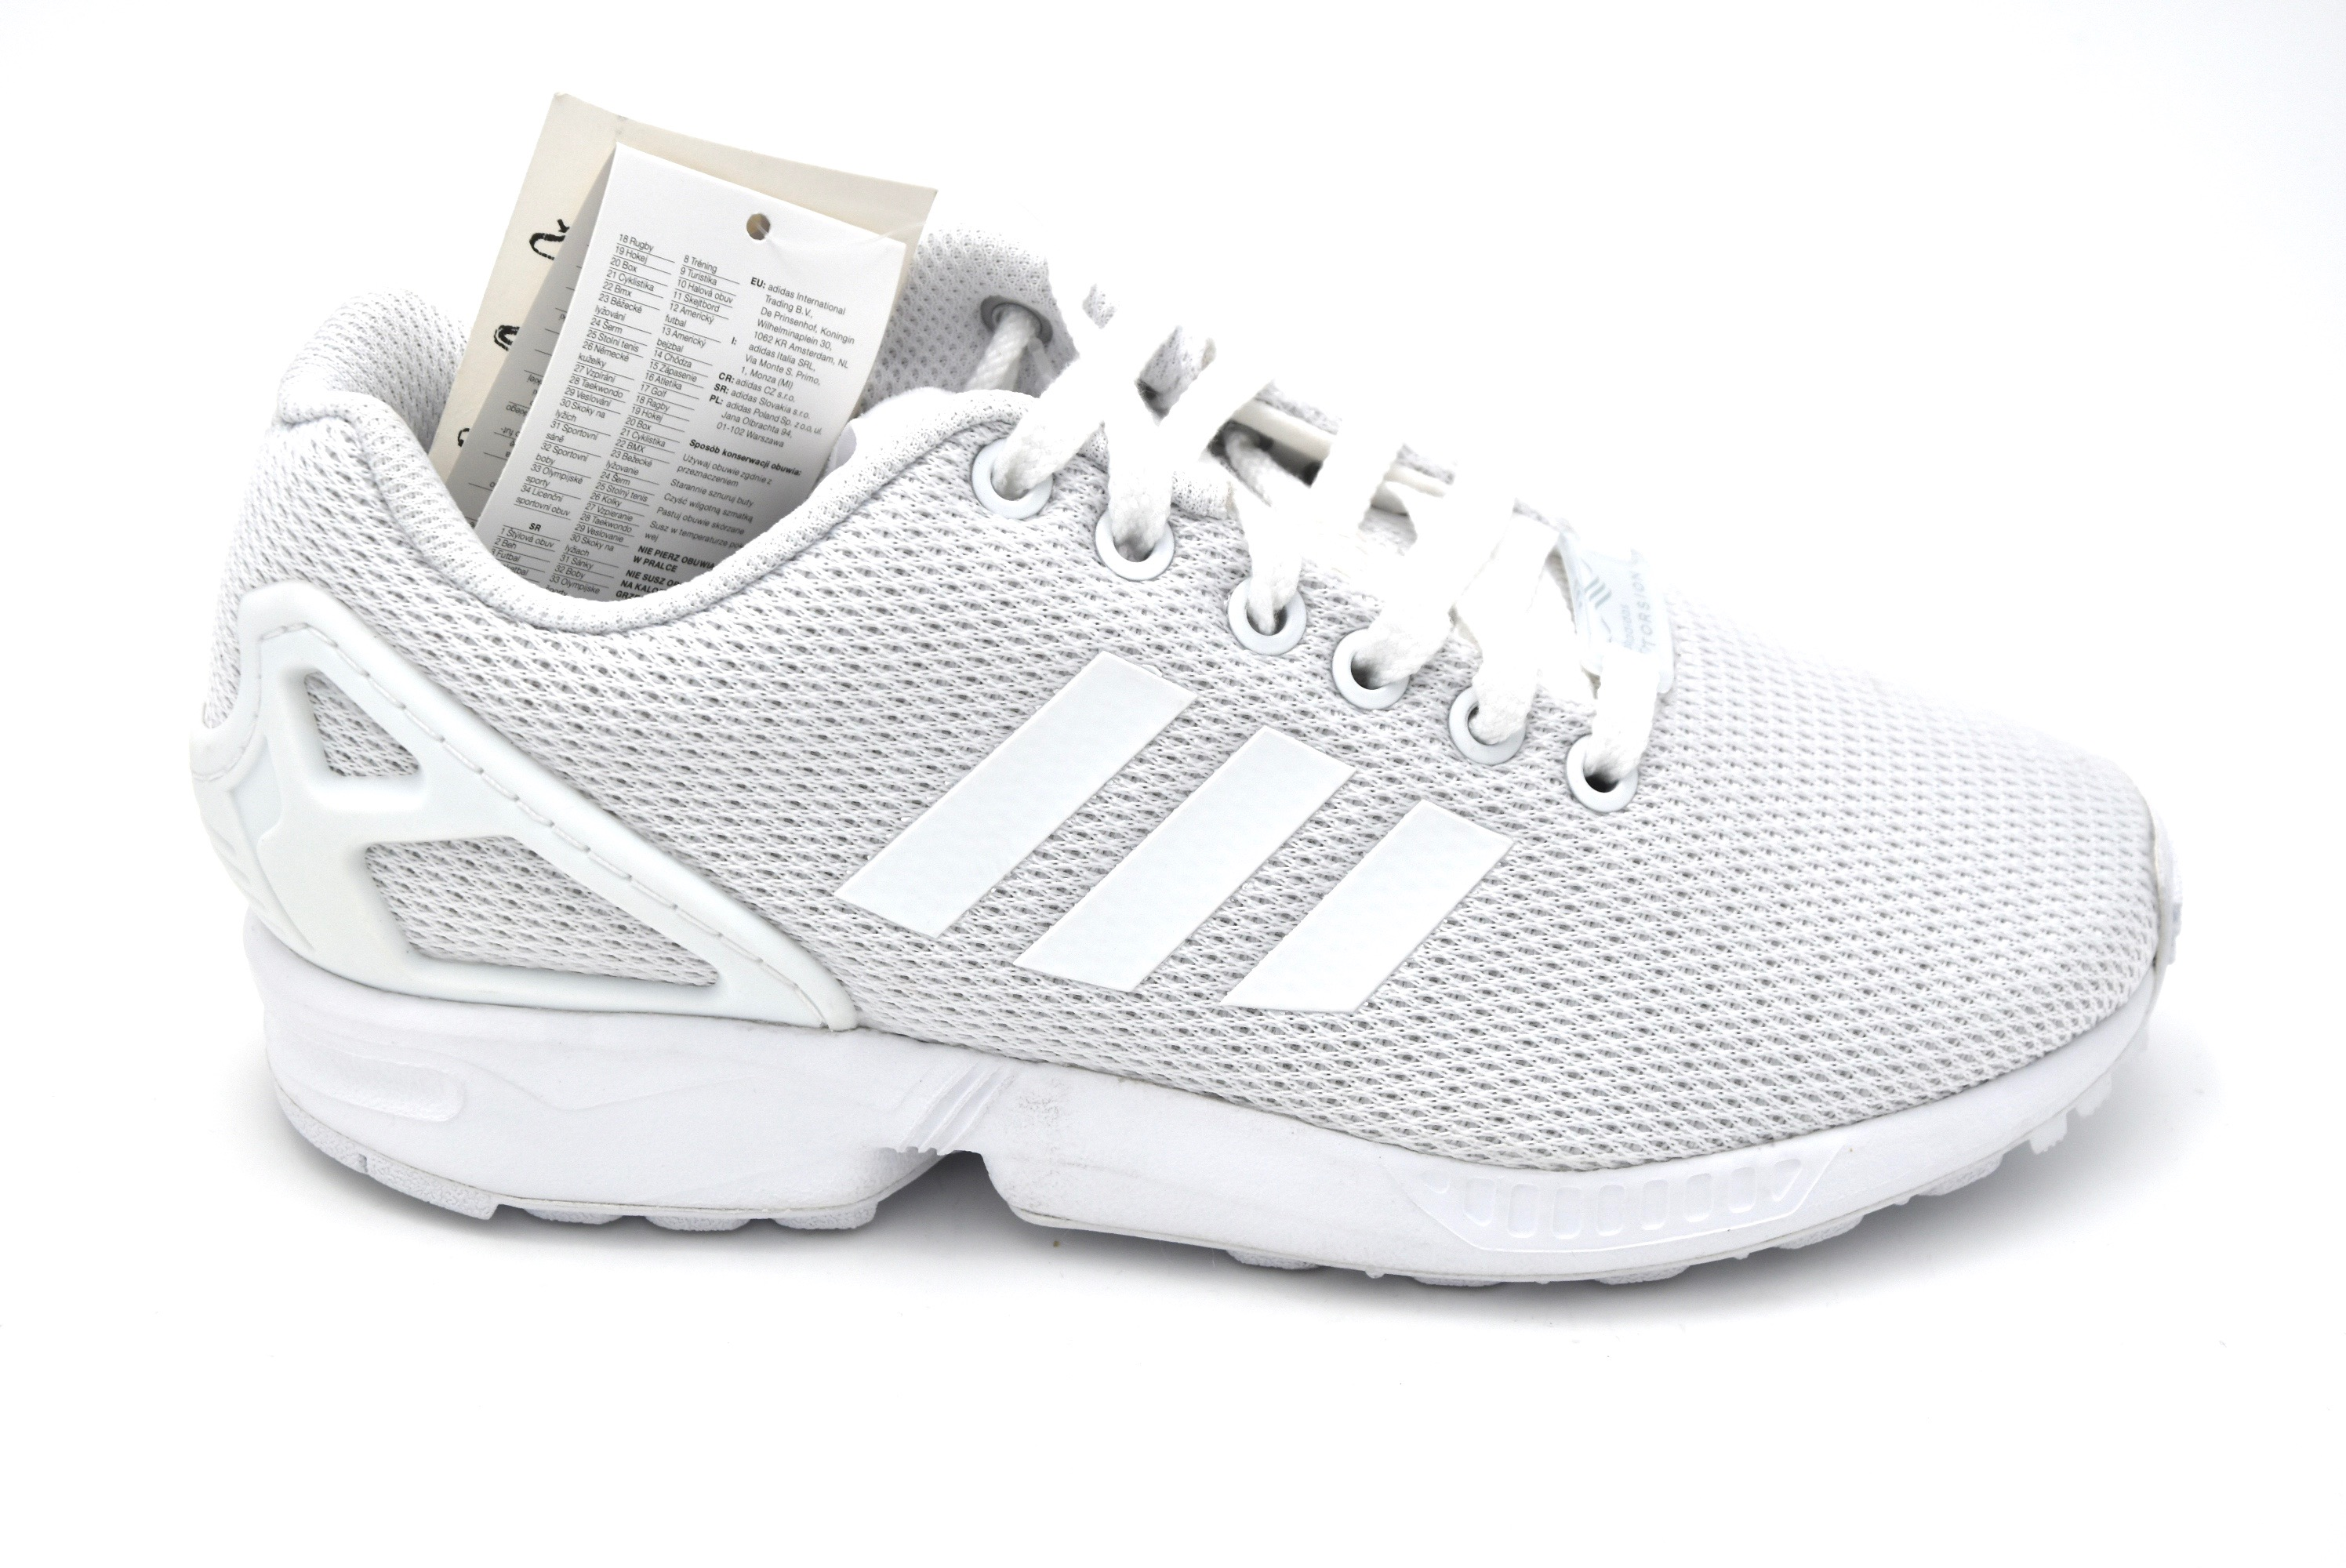 new products 12524 33eee ADIDAS DONNA SCARPA SNEAKER SPORTIVA TEMPO LIBERO ART. S32277 - S32279 ZX  FLUX